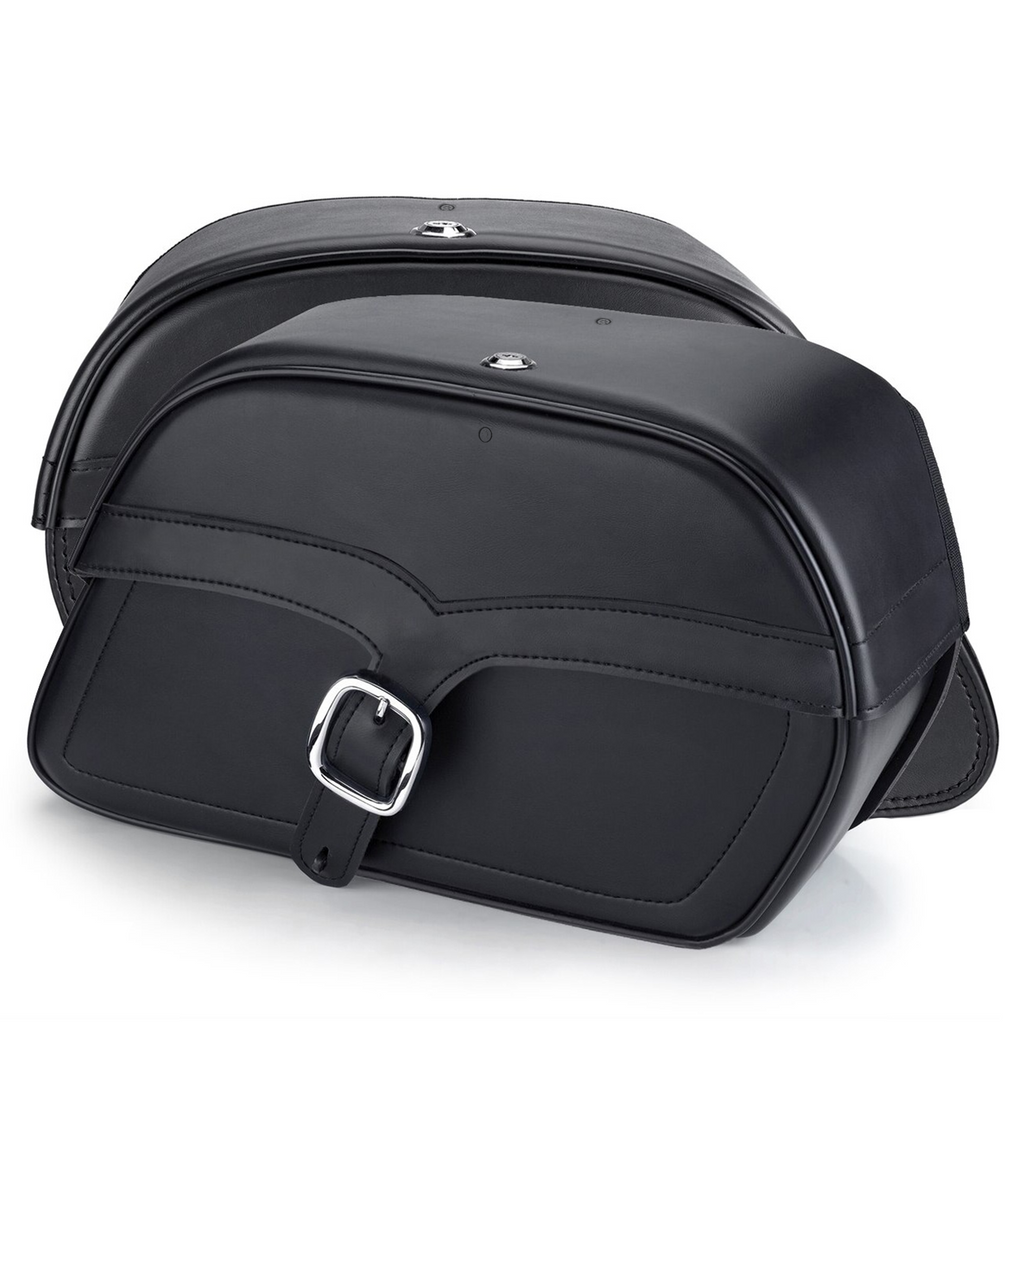 Victory Kingpin Large Charger Single Strap Motorcycle Saddlebags Both bags view